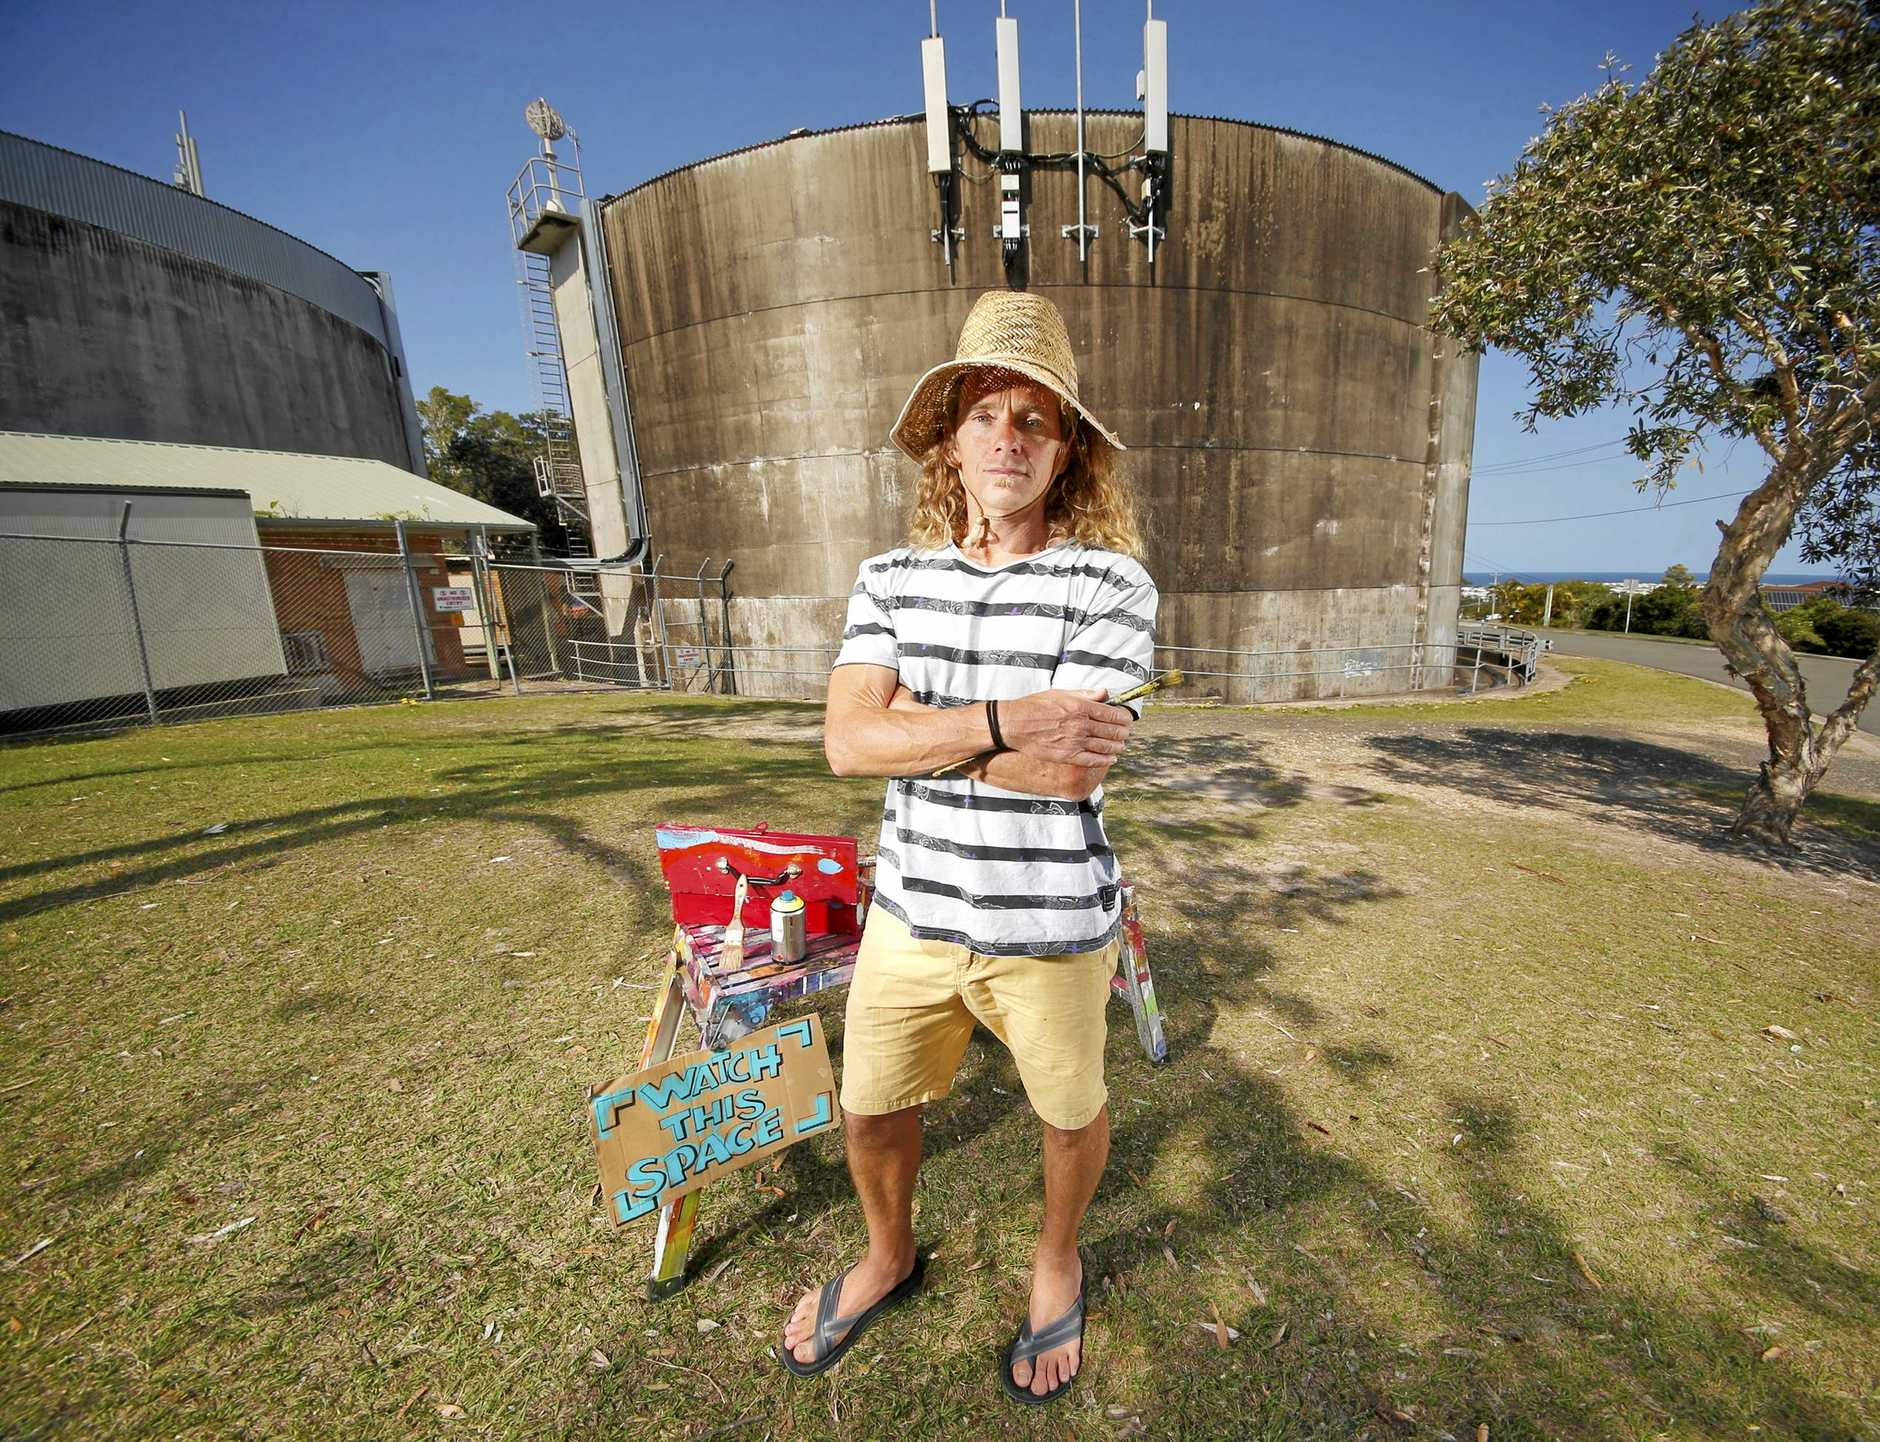 Painting the Kingscliff water tower could be a great community-building exercise, says local artist Glenn Case.